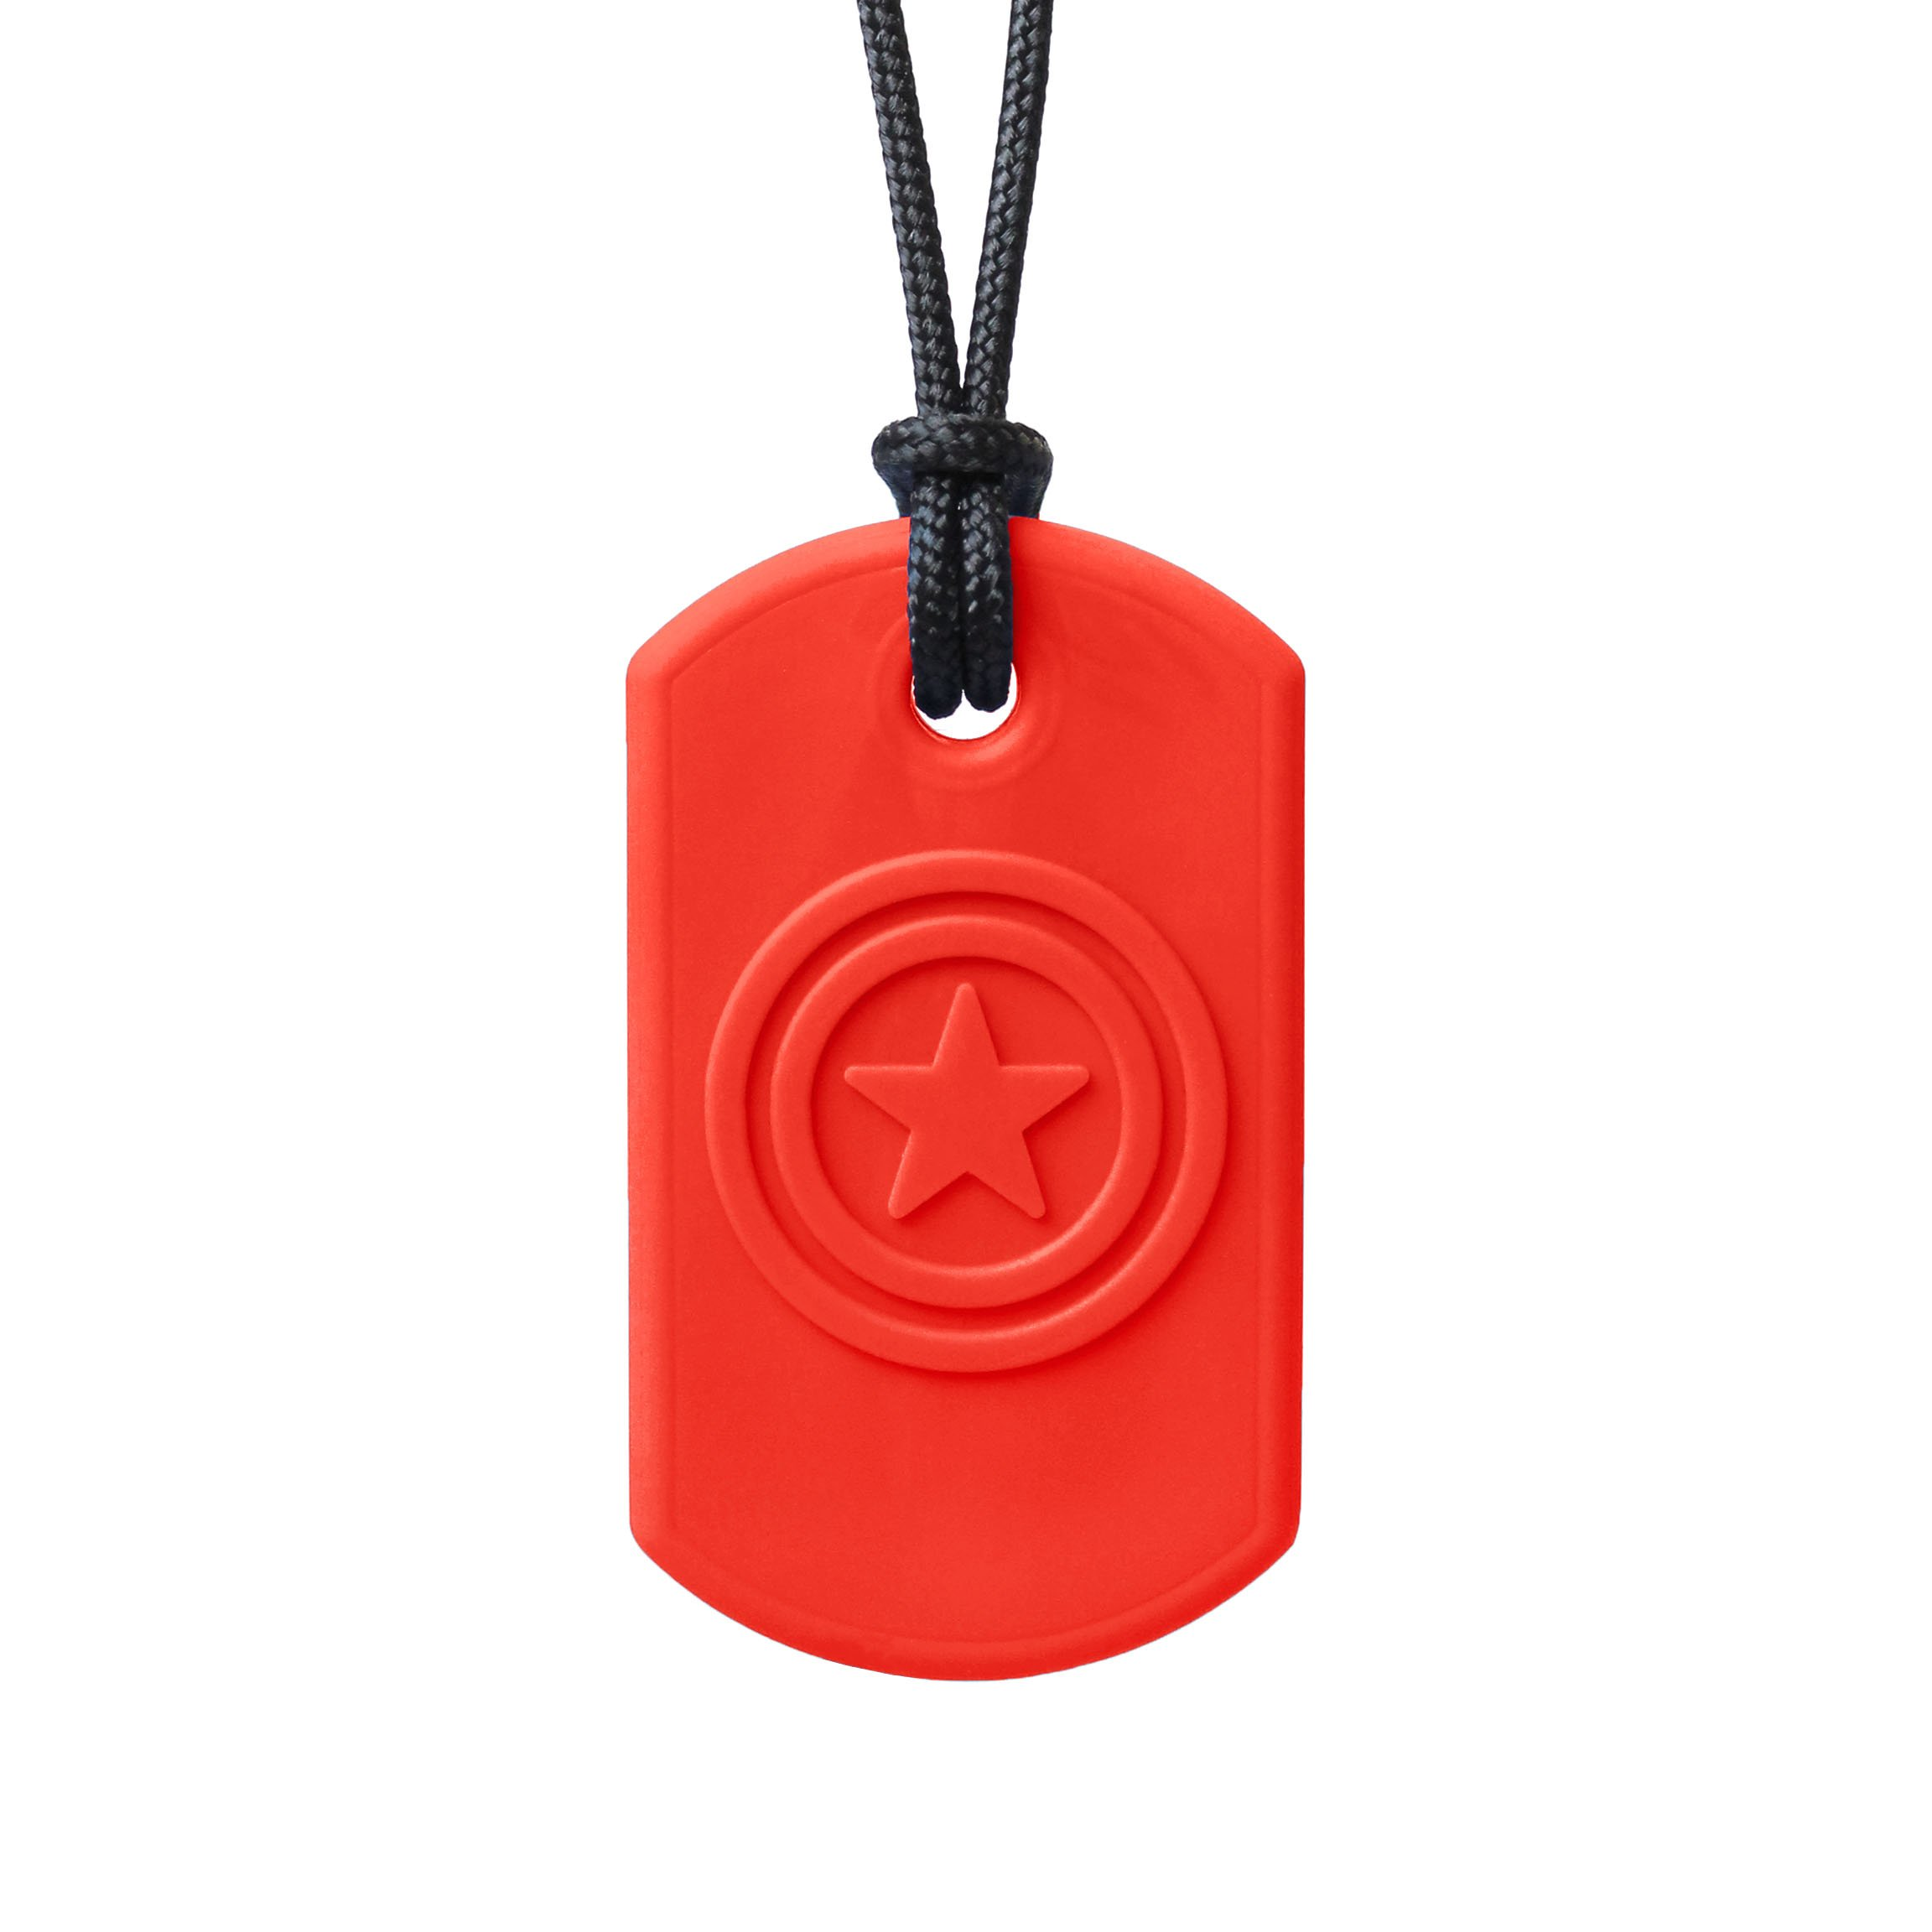 Amazon ARK s Super Star Sensory Chew Necklace Made in the